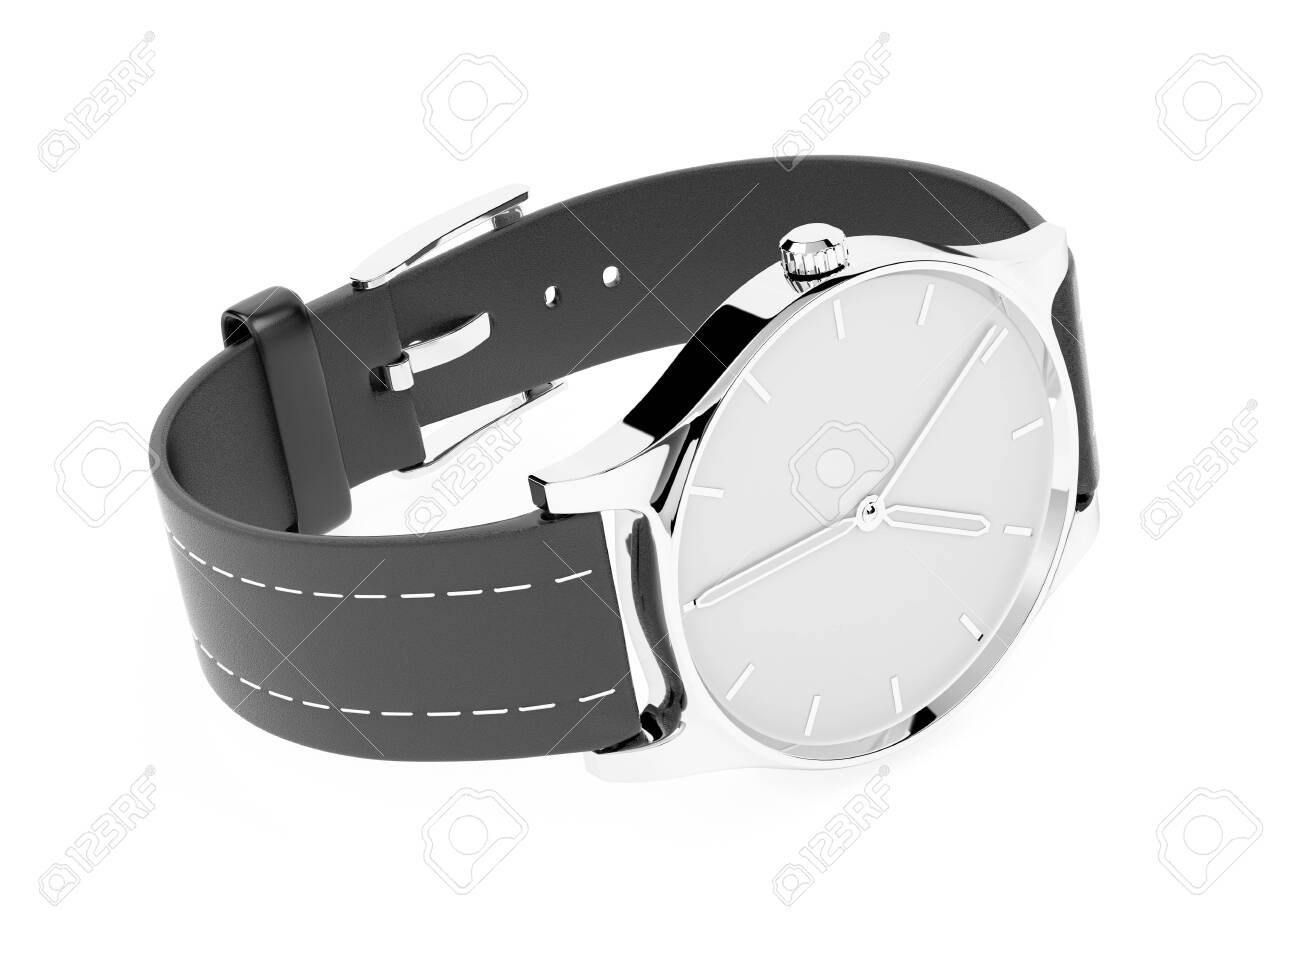 Men watch. Classic model with black band. 3d rendering illustration isolated on white background - 150191402